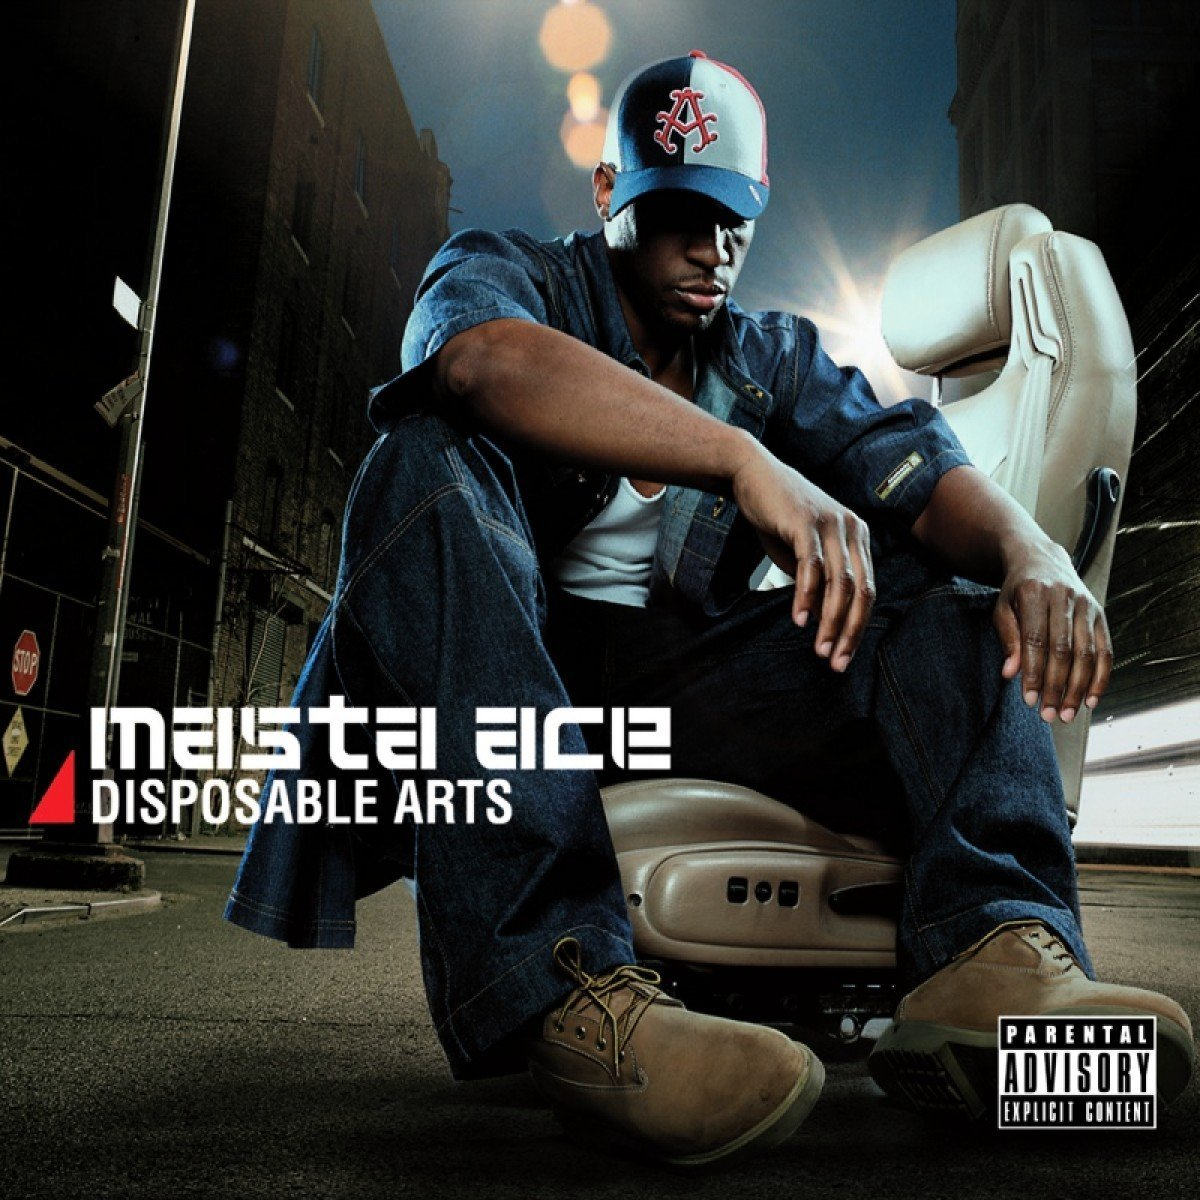 #HHKMusic Masta Ace (@mastaace) Disposable Arts Interview (Video) || https://t.co/ttj3SxA2YY https://t.co/QRxo6Z7RtS